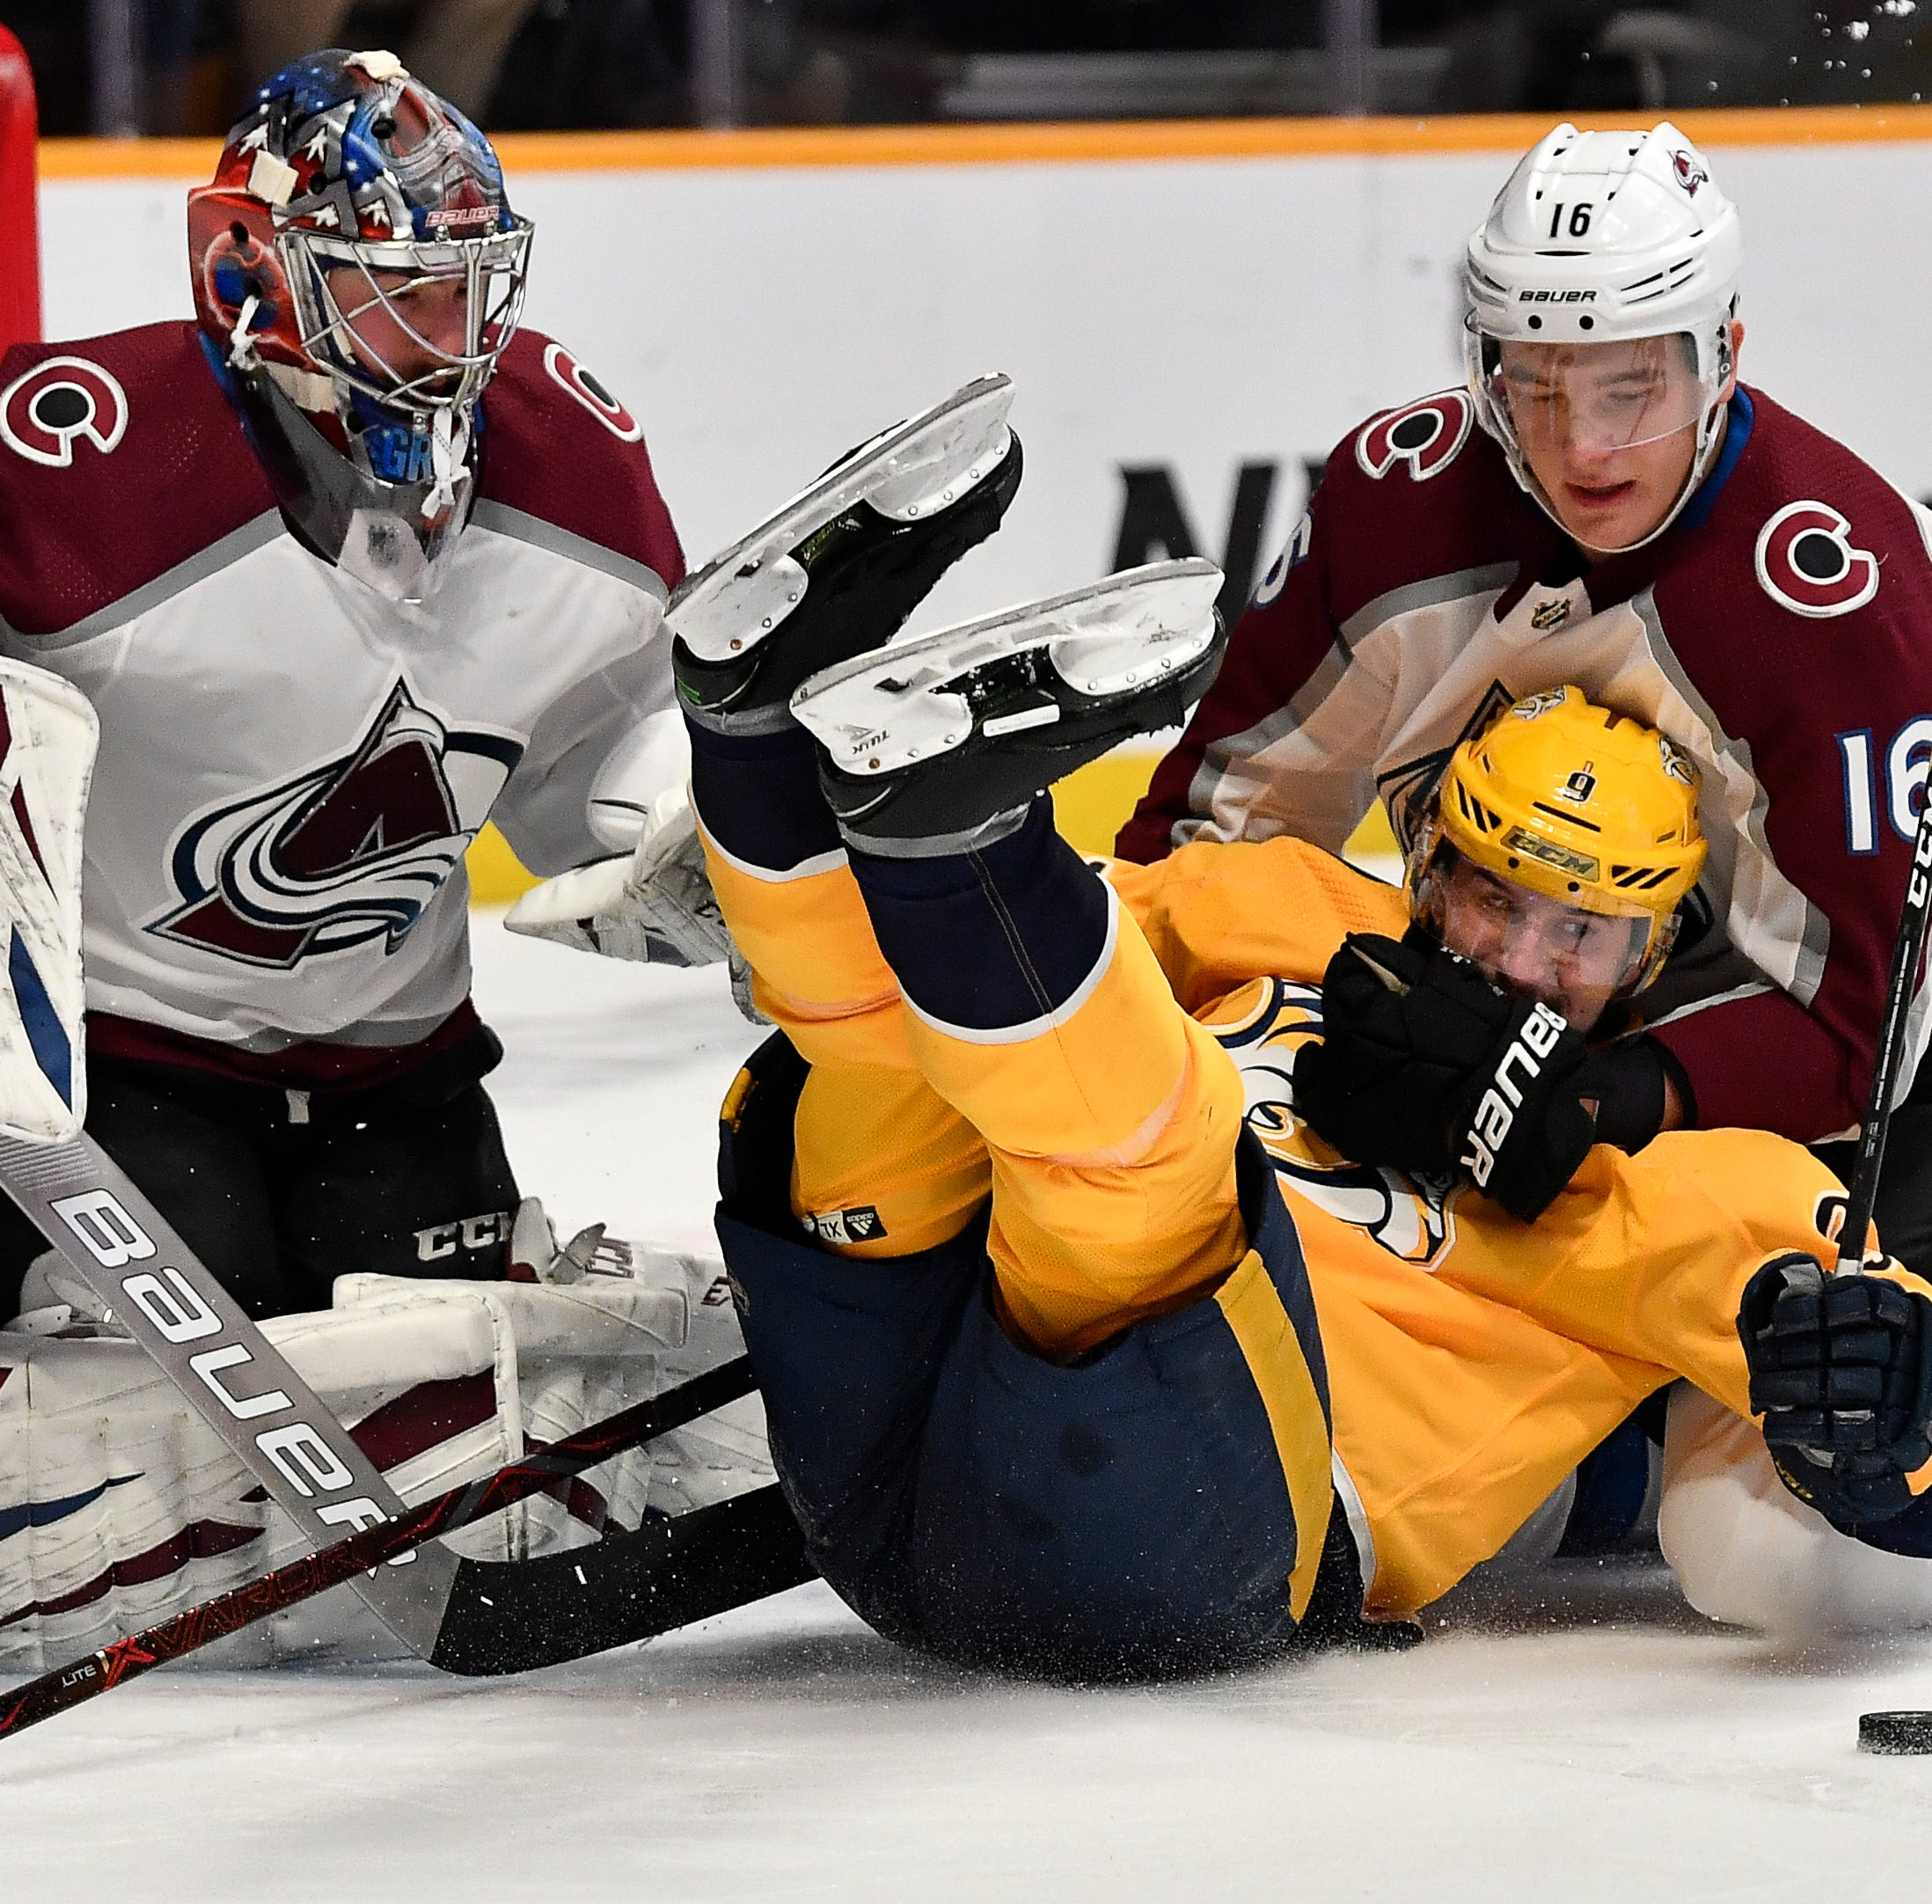 Nathan MacKinnon scores twice as Avalanche topple Predators